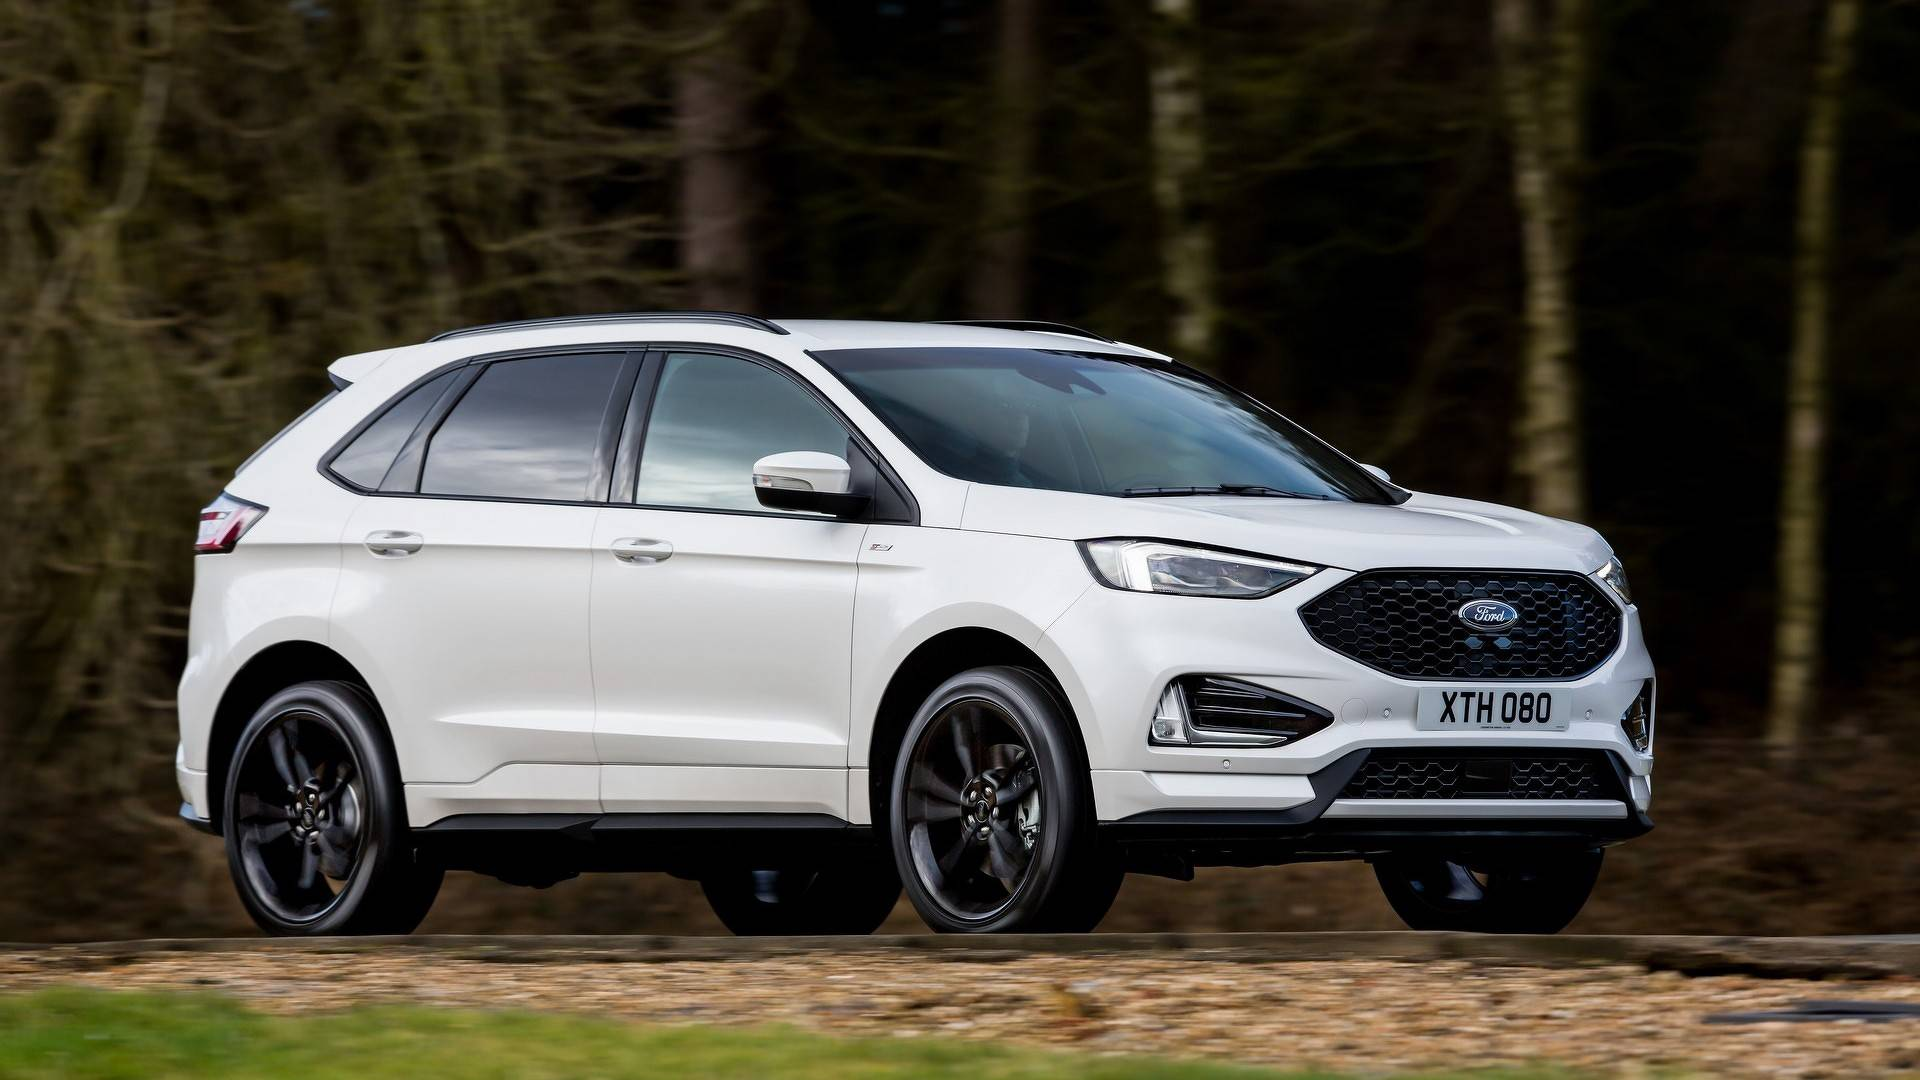 suvs suv to ascent kuga make ecosport front sales ford photos